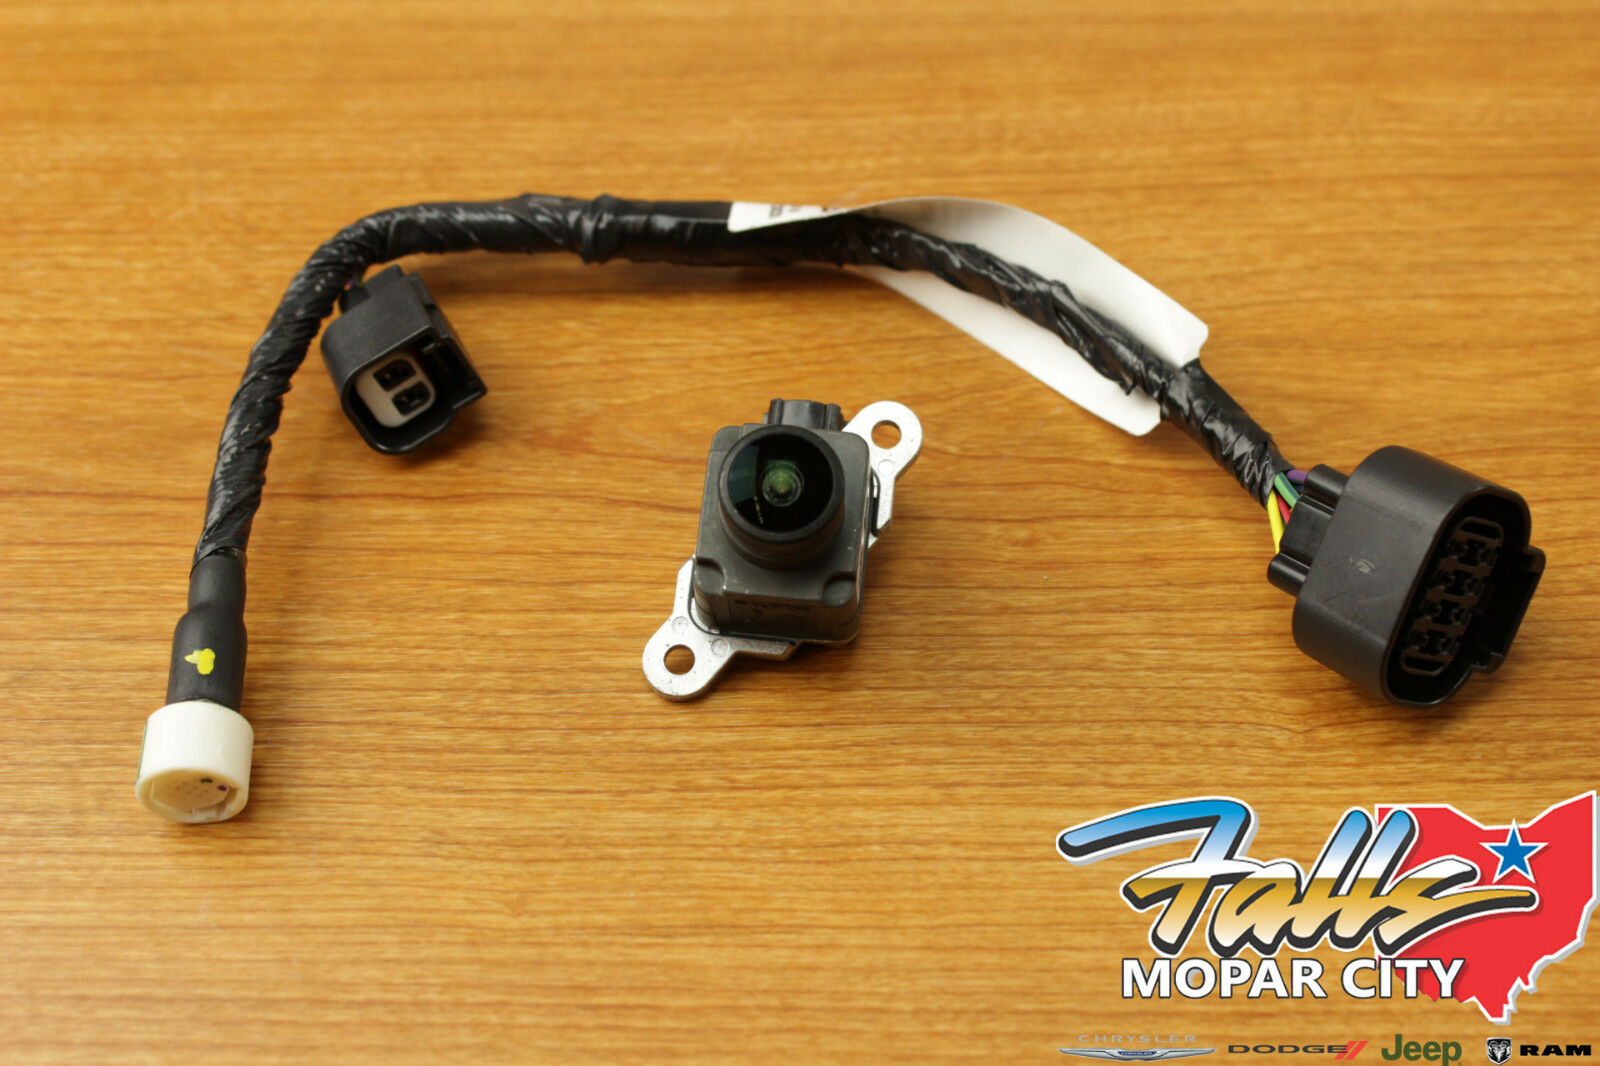 hight resolution of 2013 2017 dodge ram 1500 2500 3500 rear view camera wire harness kit mopar oem